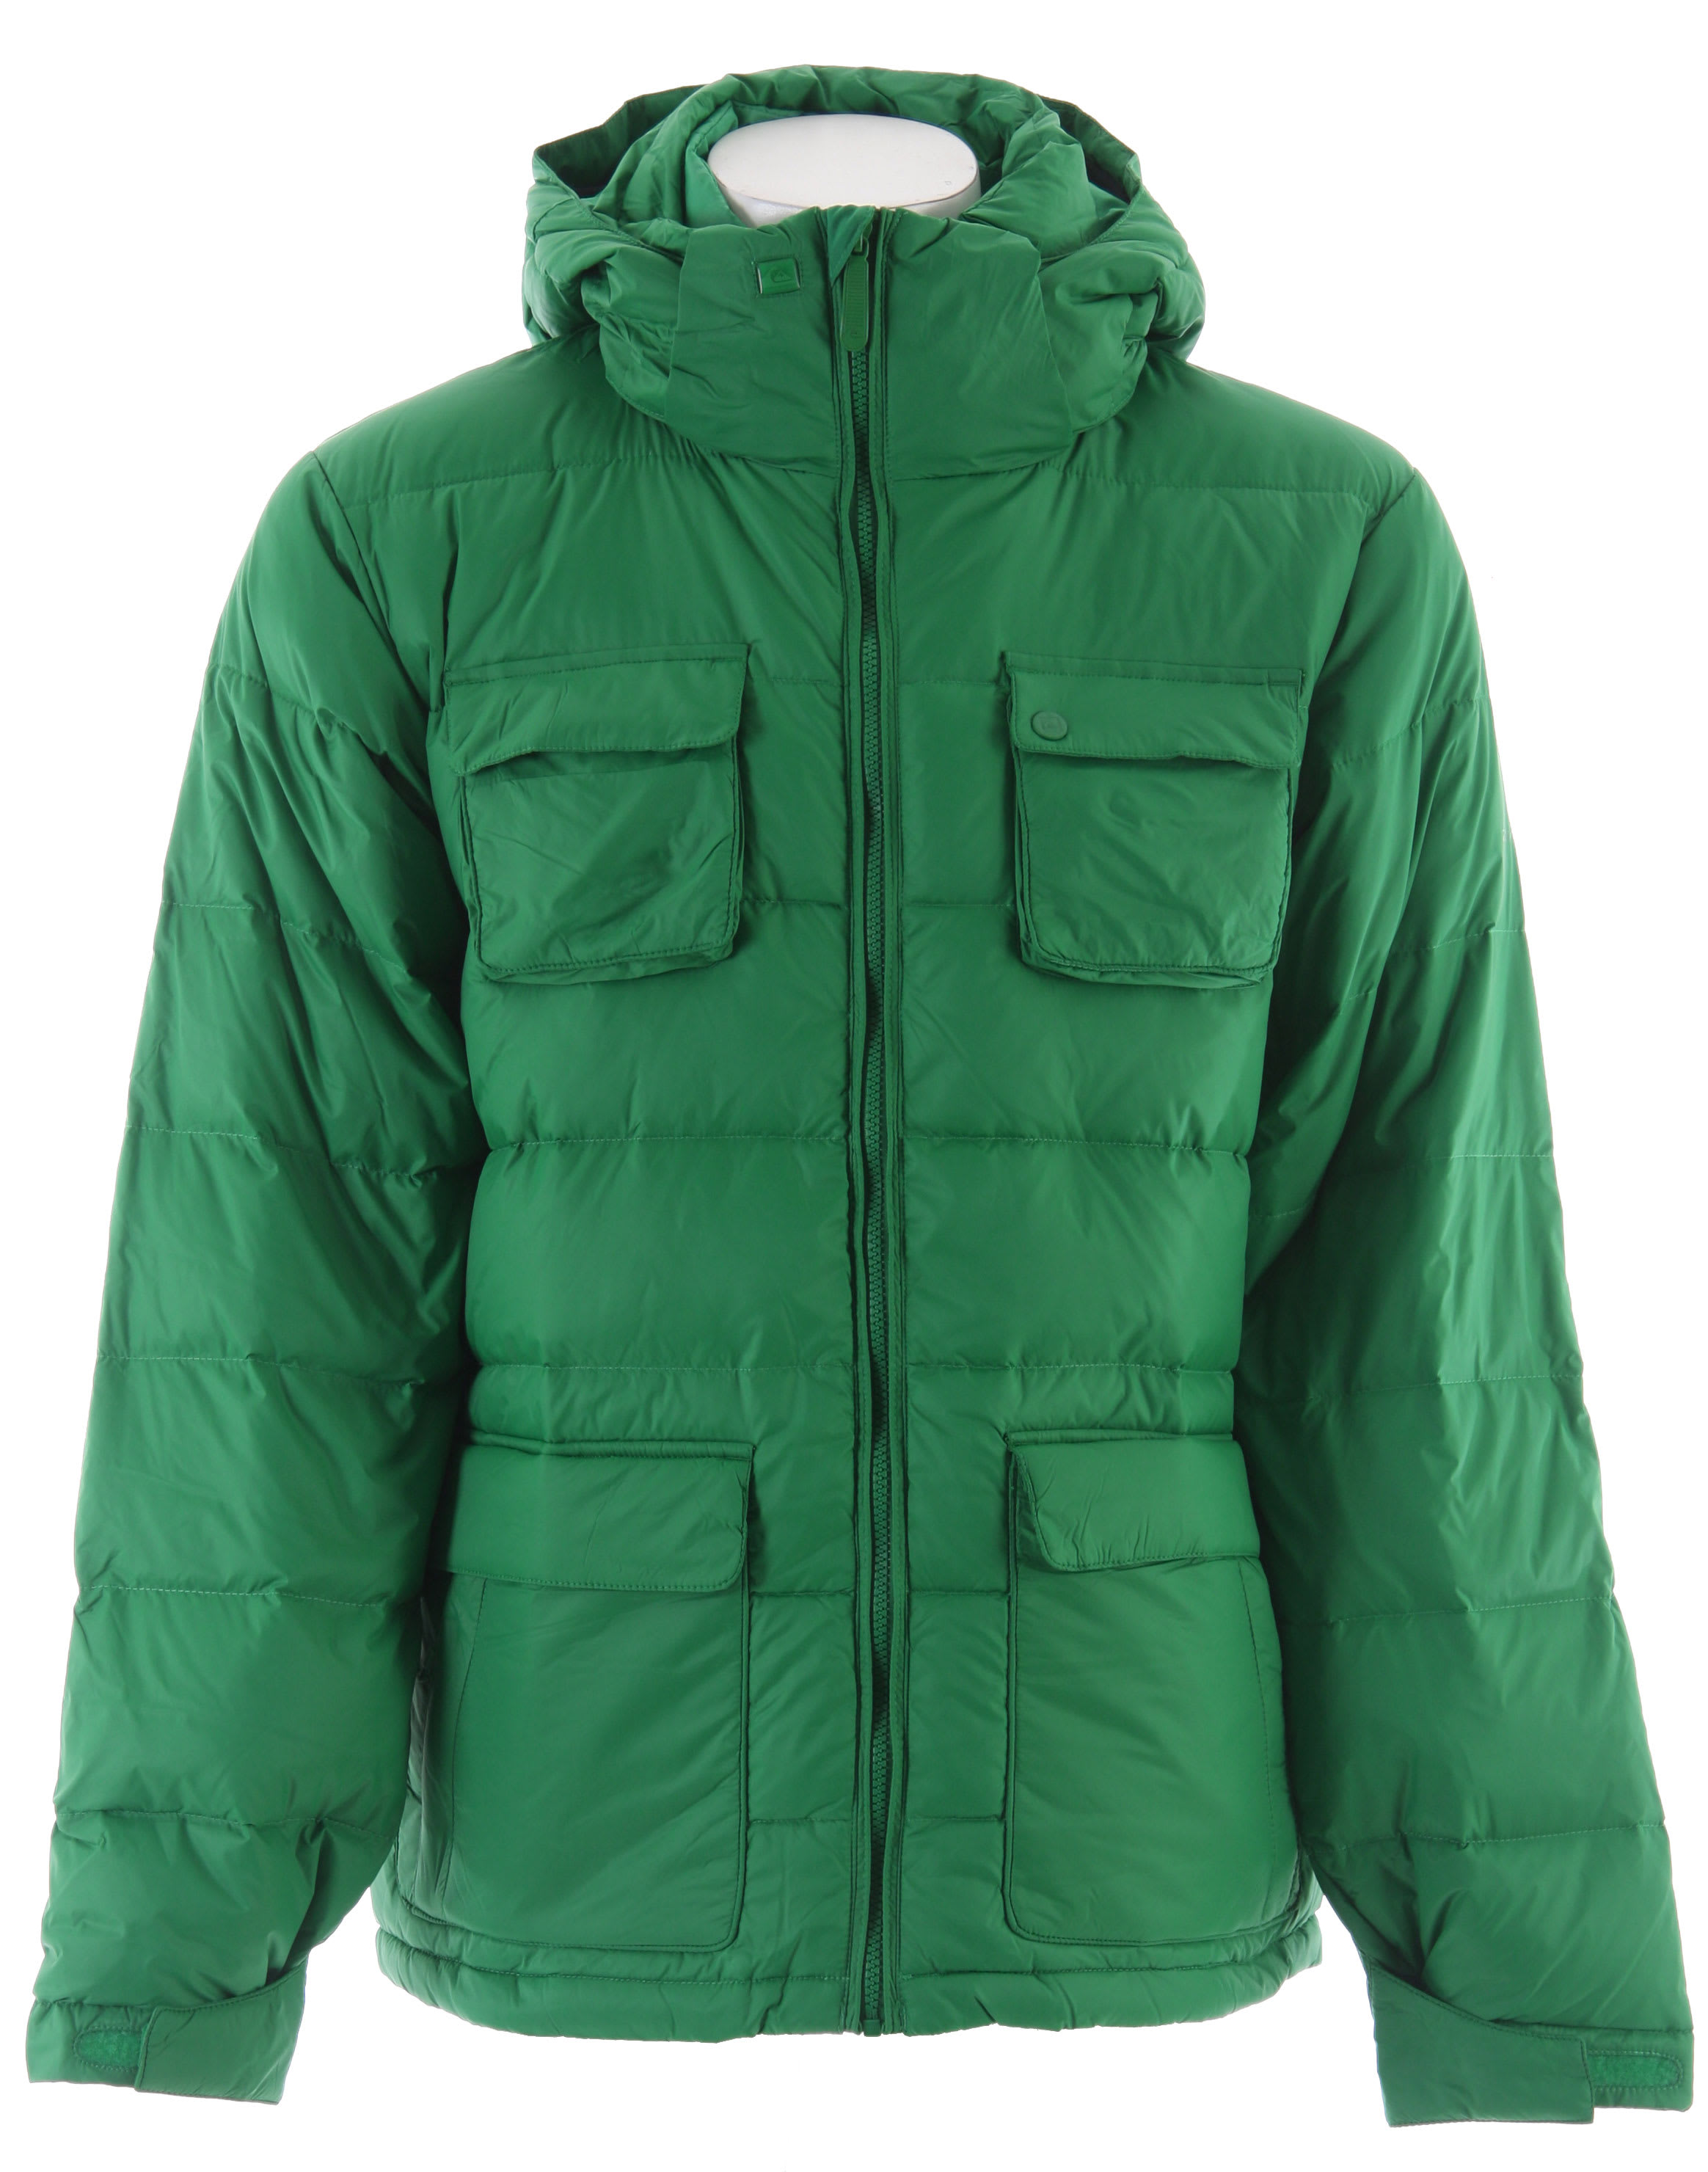 Shop for Quiksilver Aero Insulated Snowboard Jacket Green - Men's